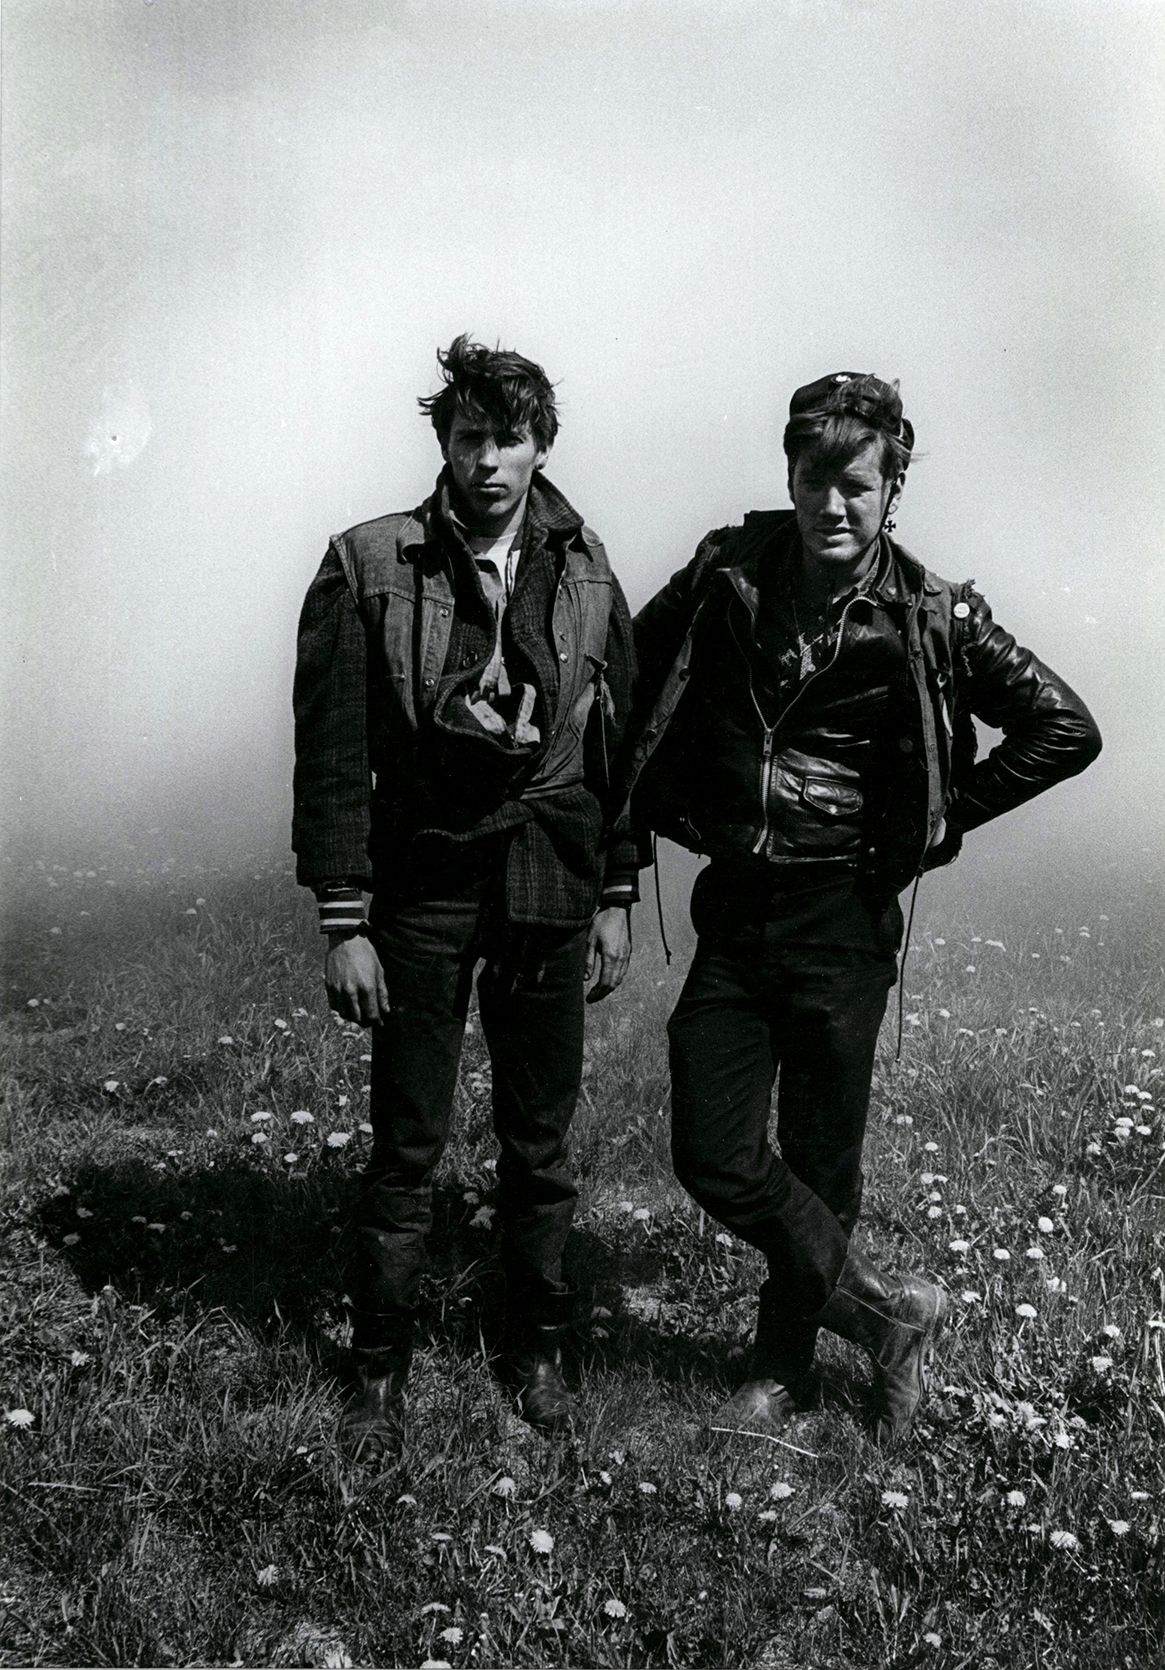 Dave and Rawhide (Columbus Outlaws), Elkhorn, Wisconsin, from The Bikeriders, 1966